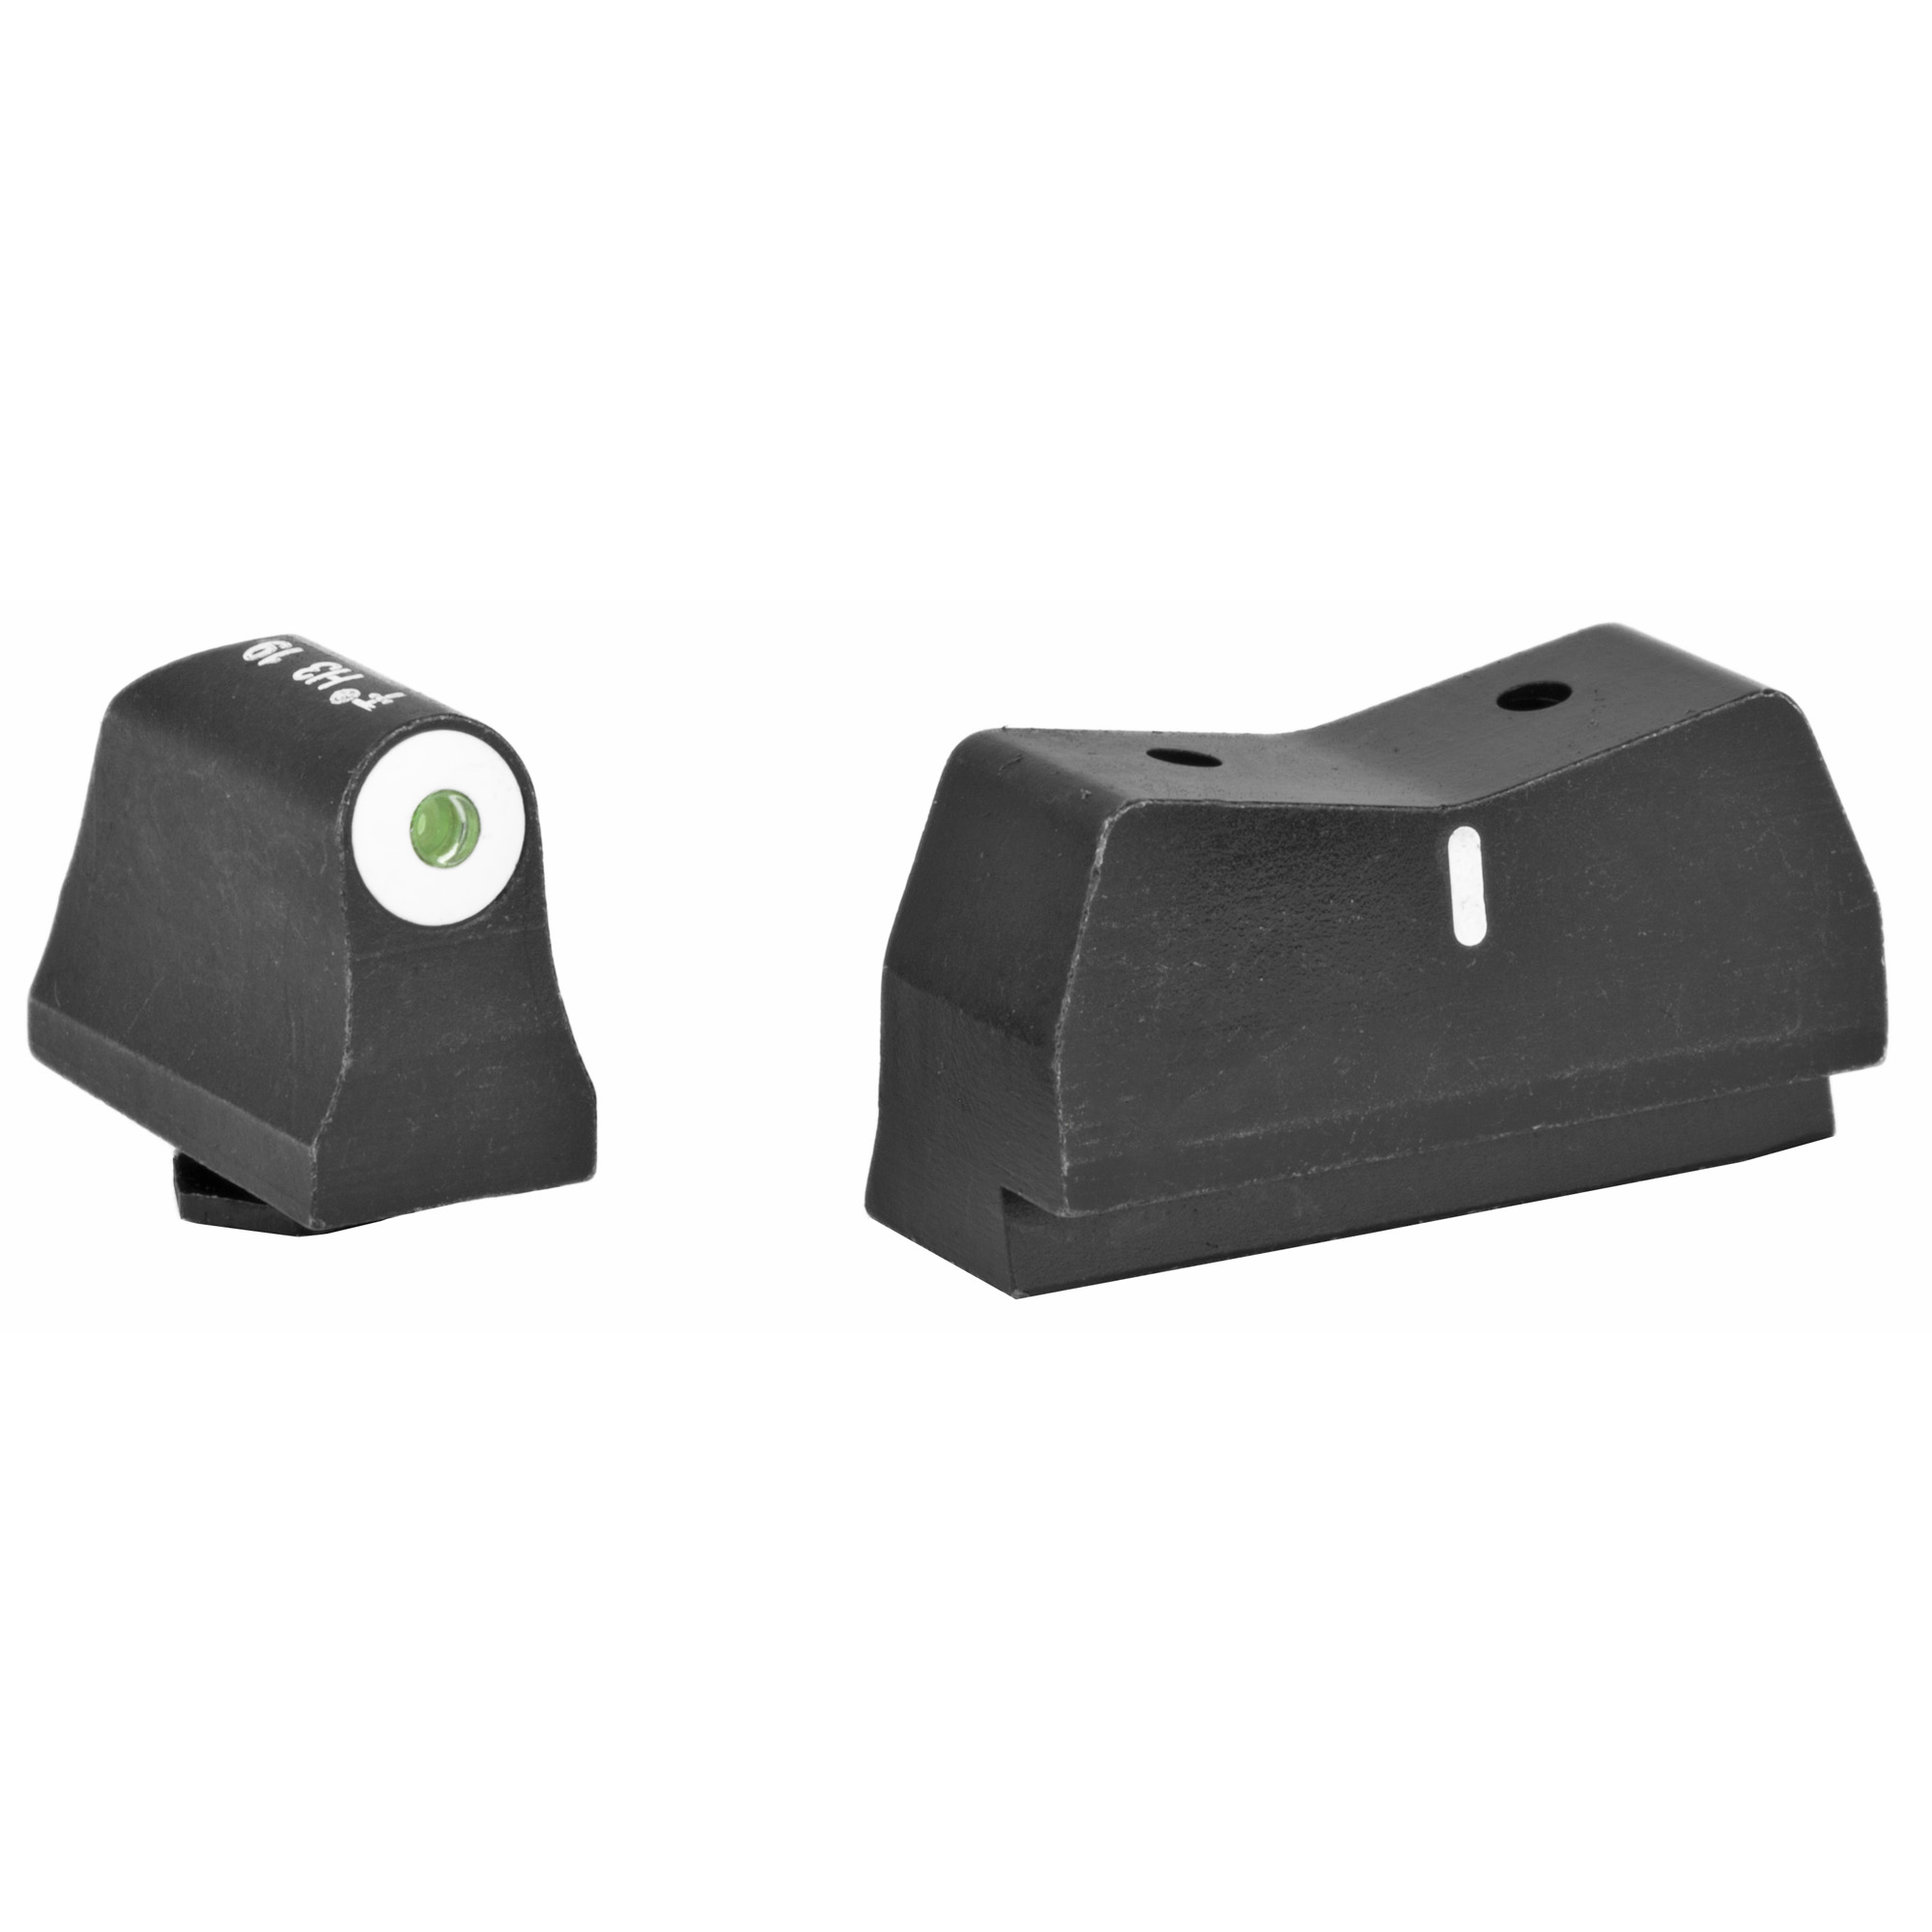 "Night Sights designed for defensive shooting and comfortable concealed carry. These night sights will allow you to get on target fast"" focus on the front sight and make a reliable shot."